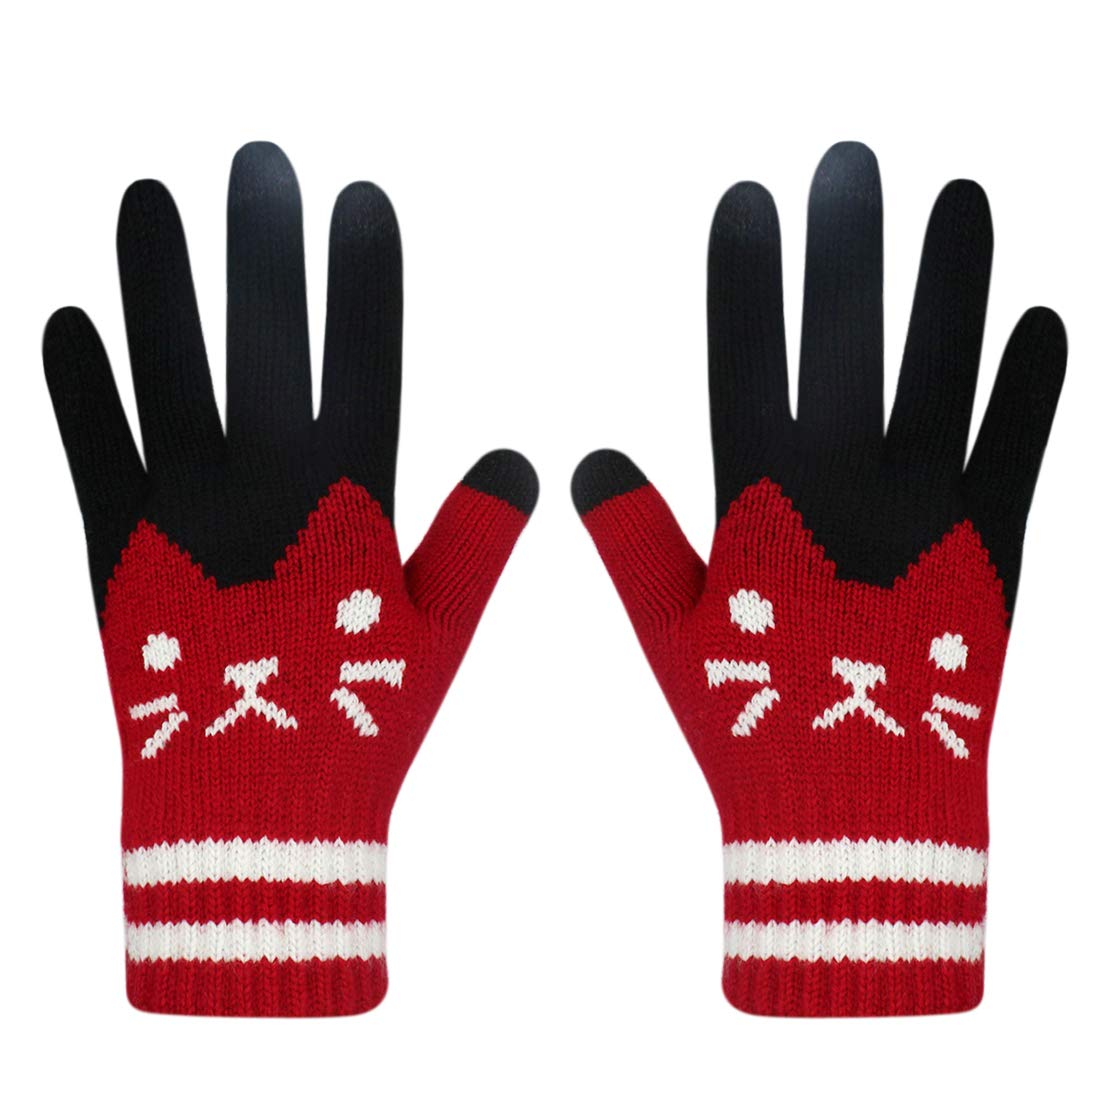 Women Men Winter Touch Screen Gloves Cat Warm Knit Texting Gloves Touchscreen Mittens Aimeio